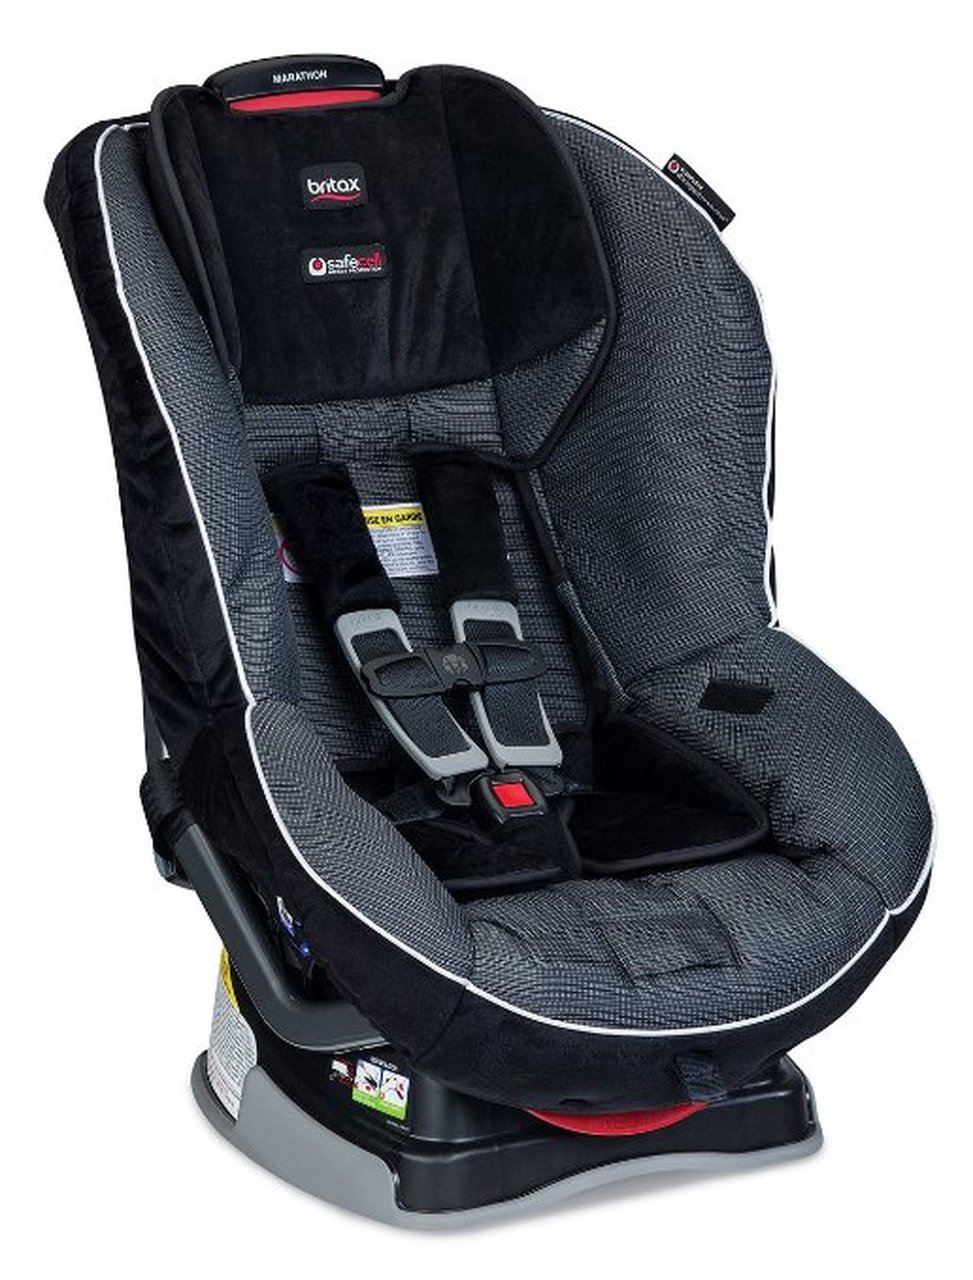 Britax Marathon G4.1 Convertible Car Seat Front and Rear Facing